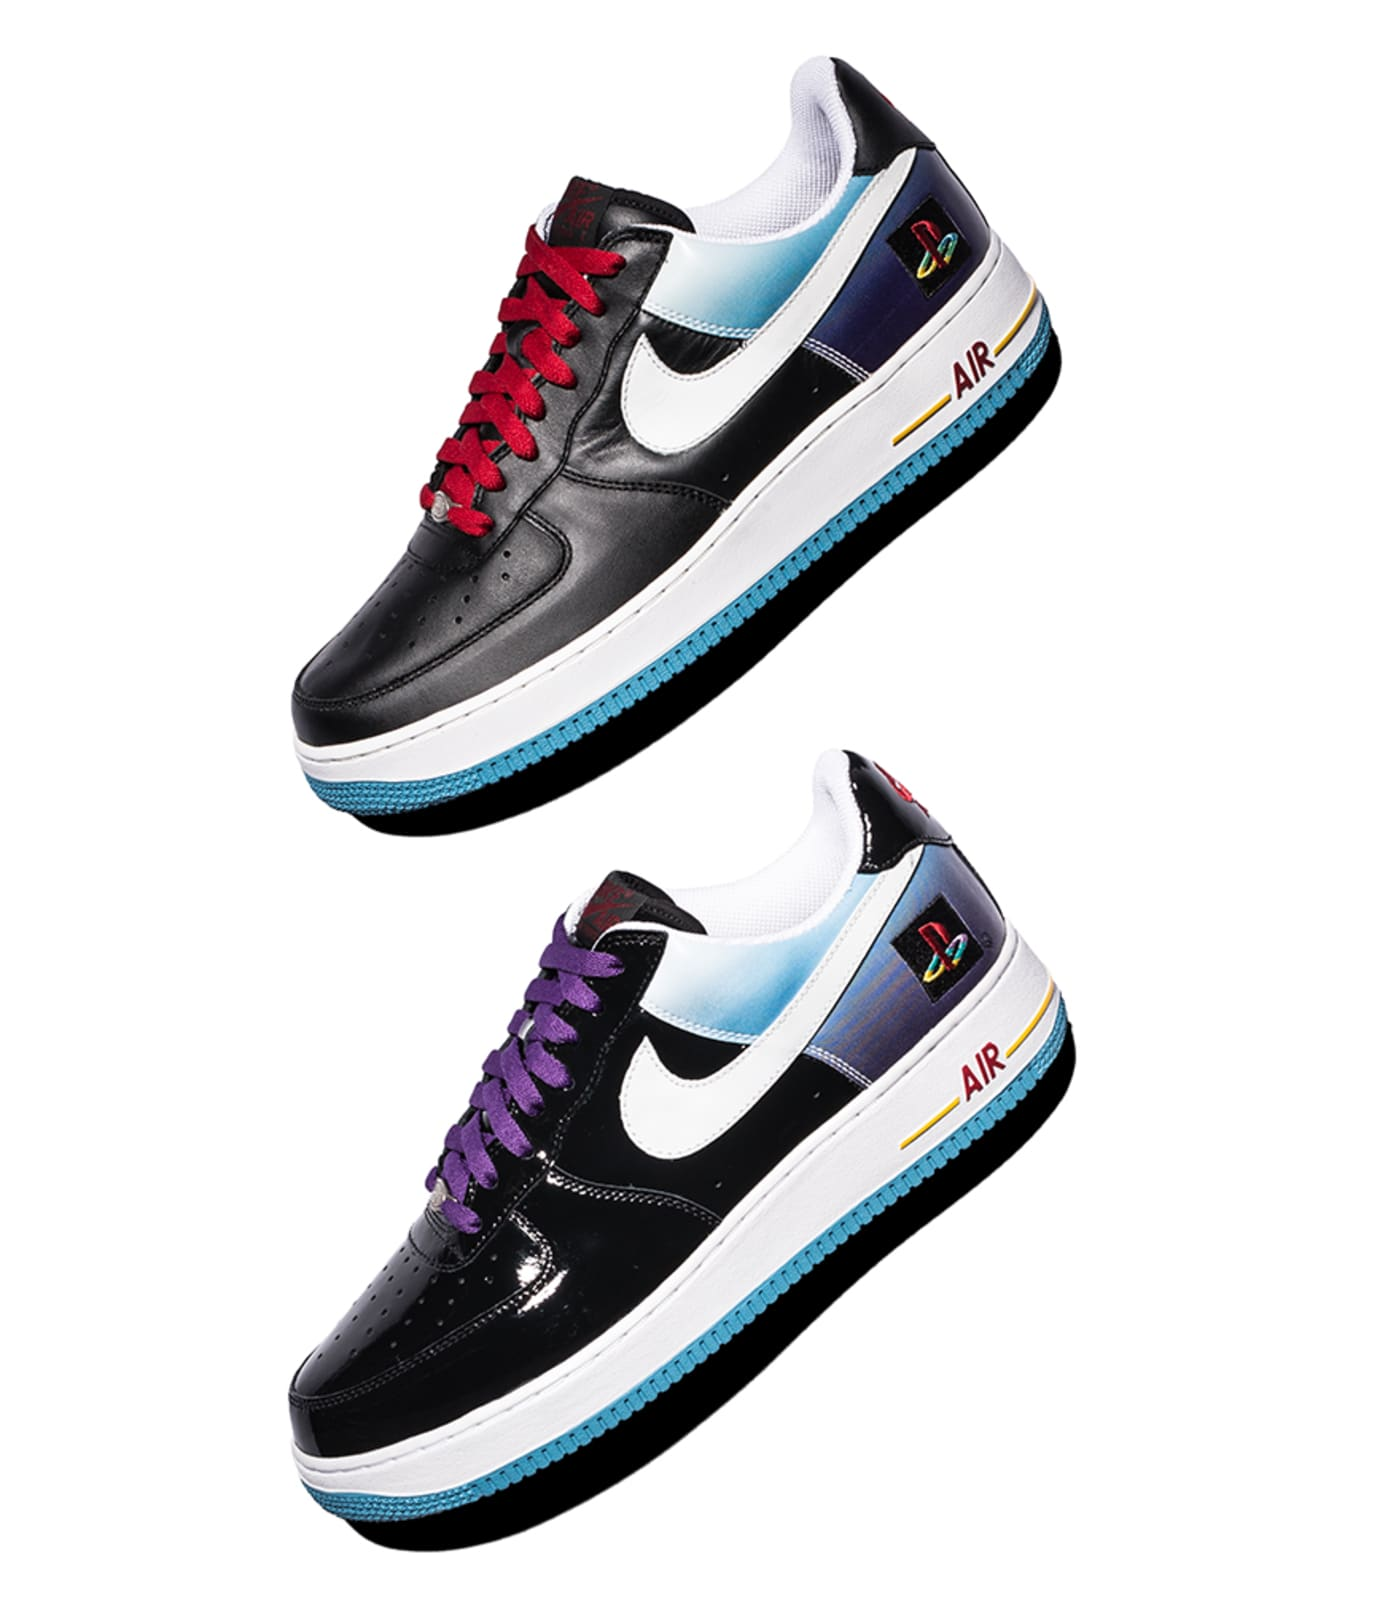 Playstation x Nike Air Force 1 Low (Premium Leather vs. Patent Leather)